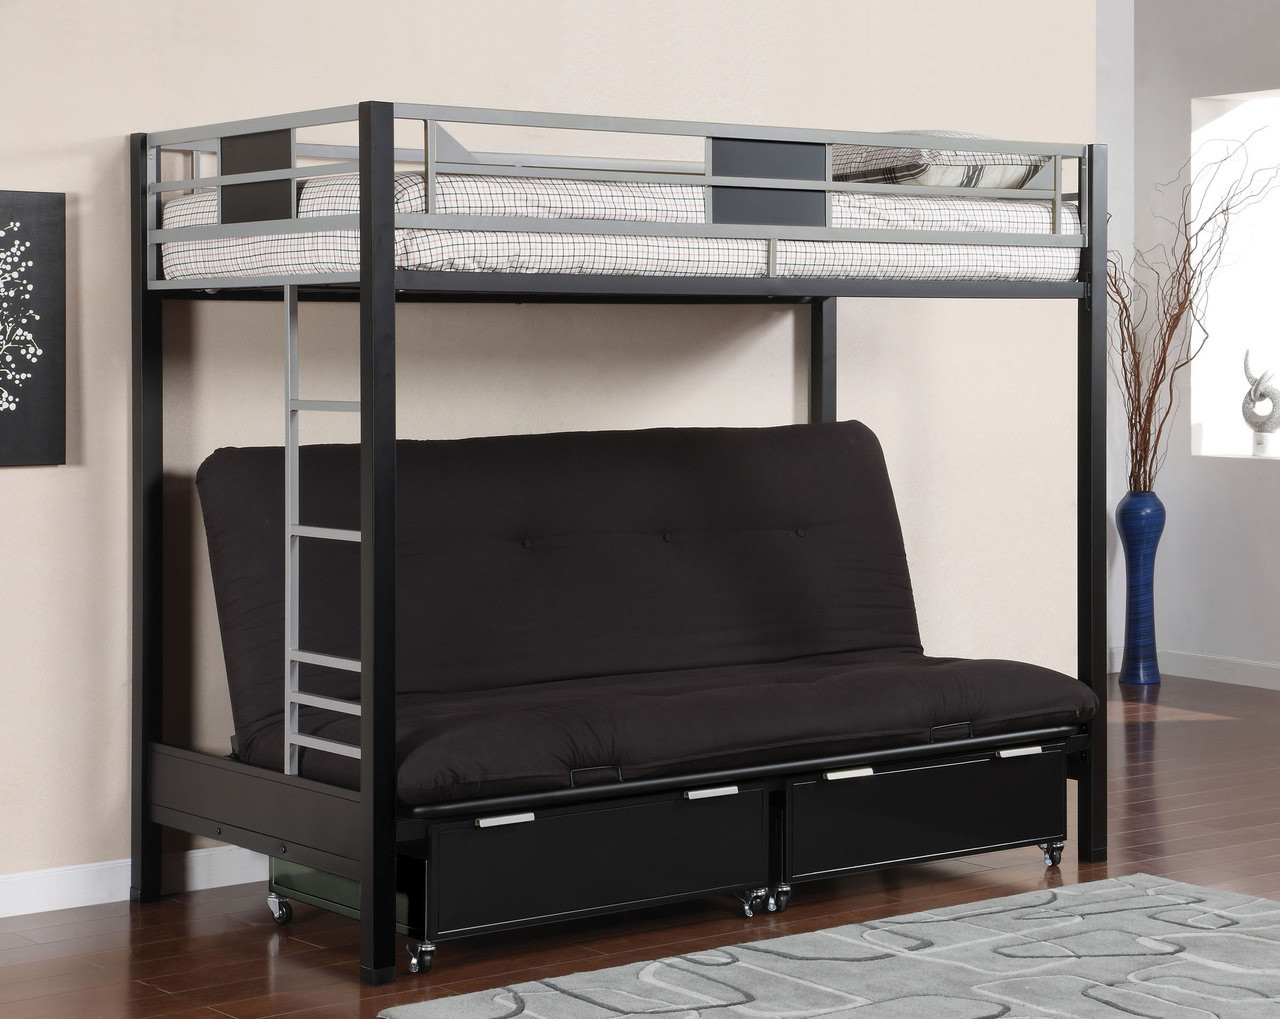 Silver Amp Black Metal Twin Futon Bunk Bed Futon Bunk For Sale